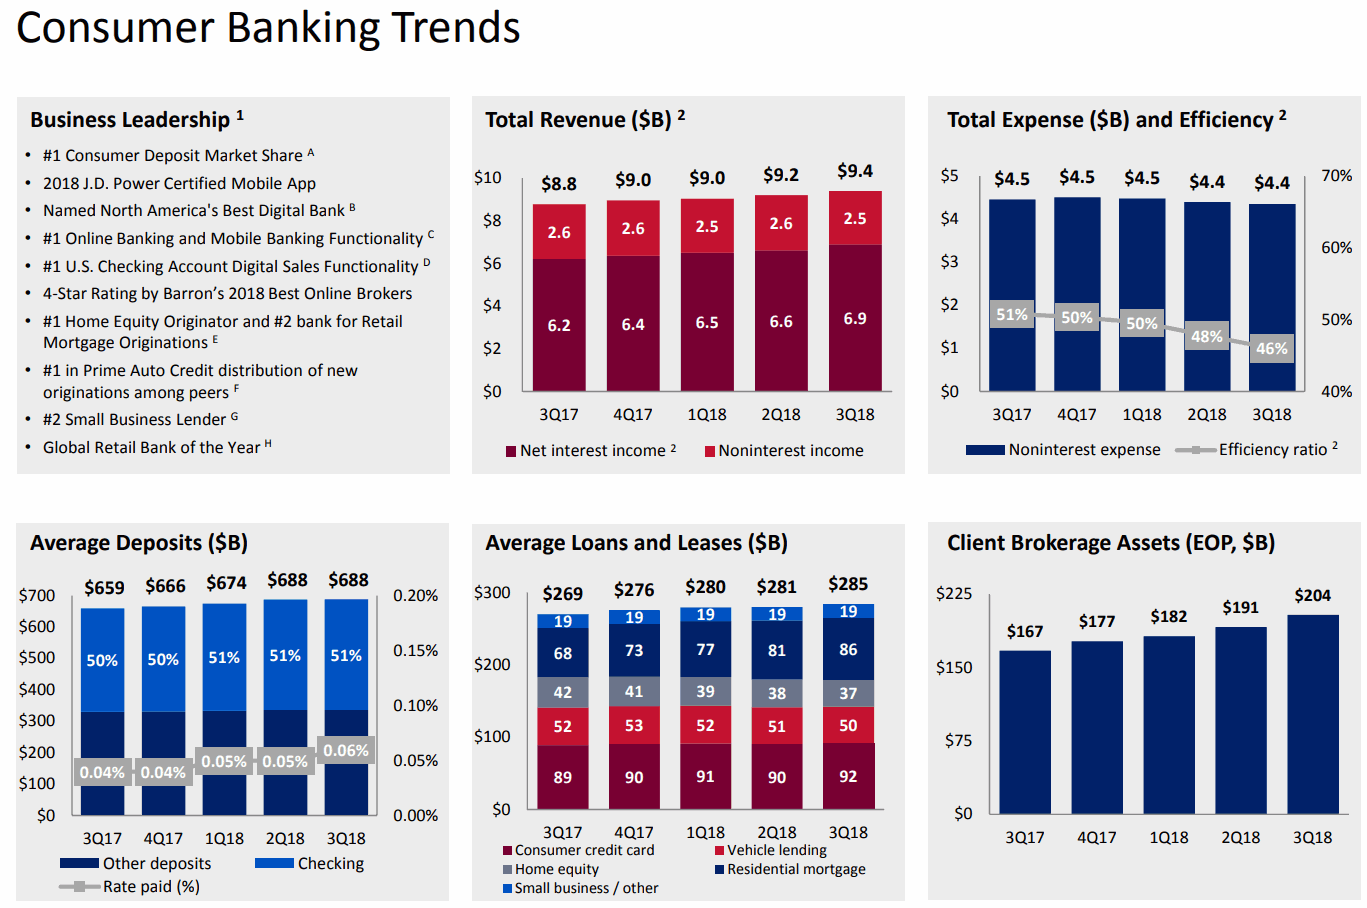 Bank-of-America-Consumer-Banking-Trends-2018Q3